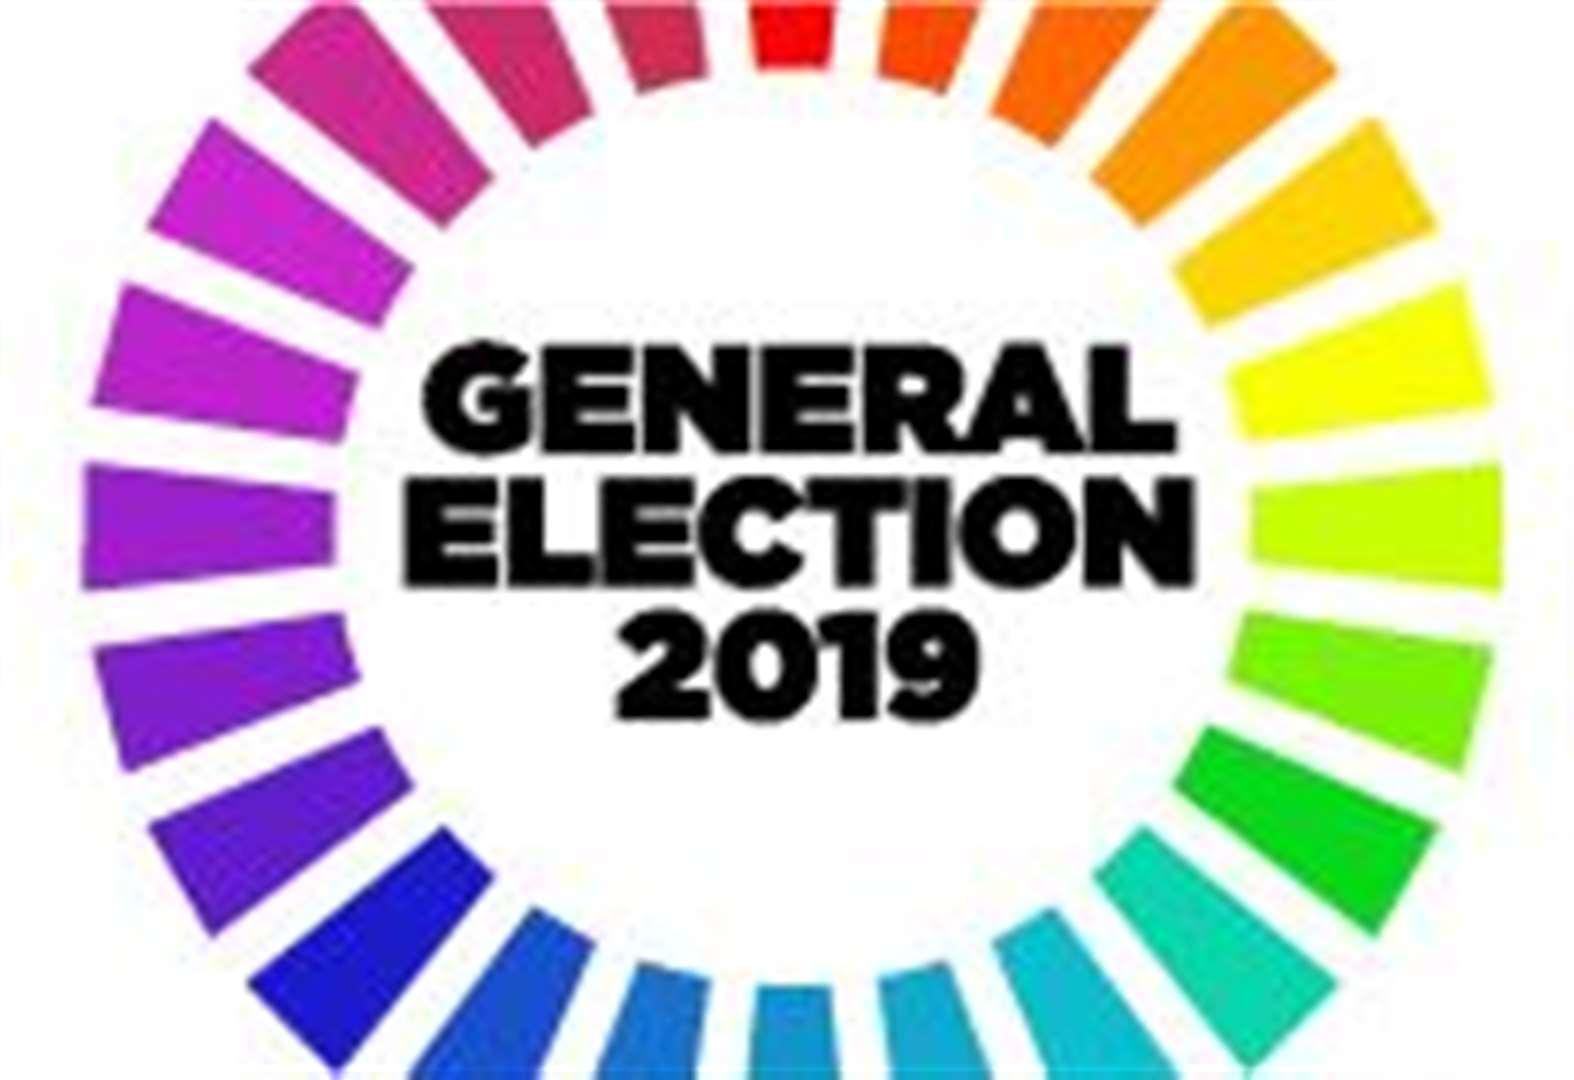 General Election 2019: Campaigns launched as December 12 looms